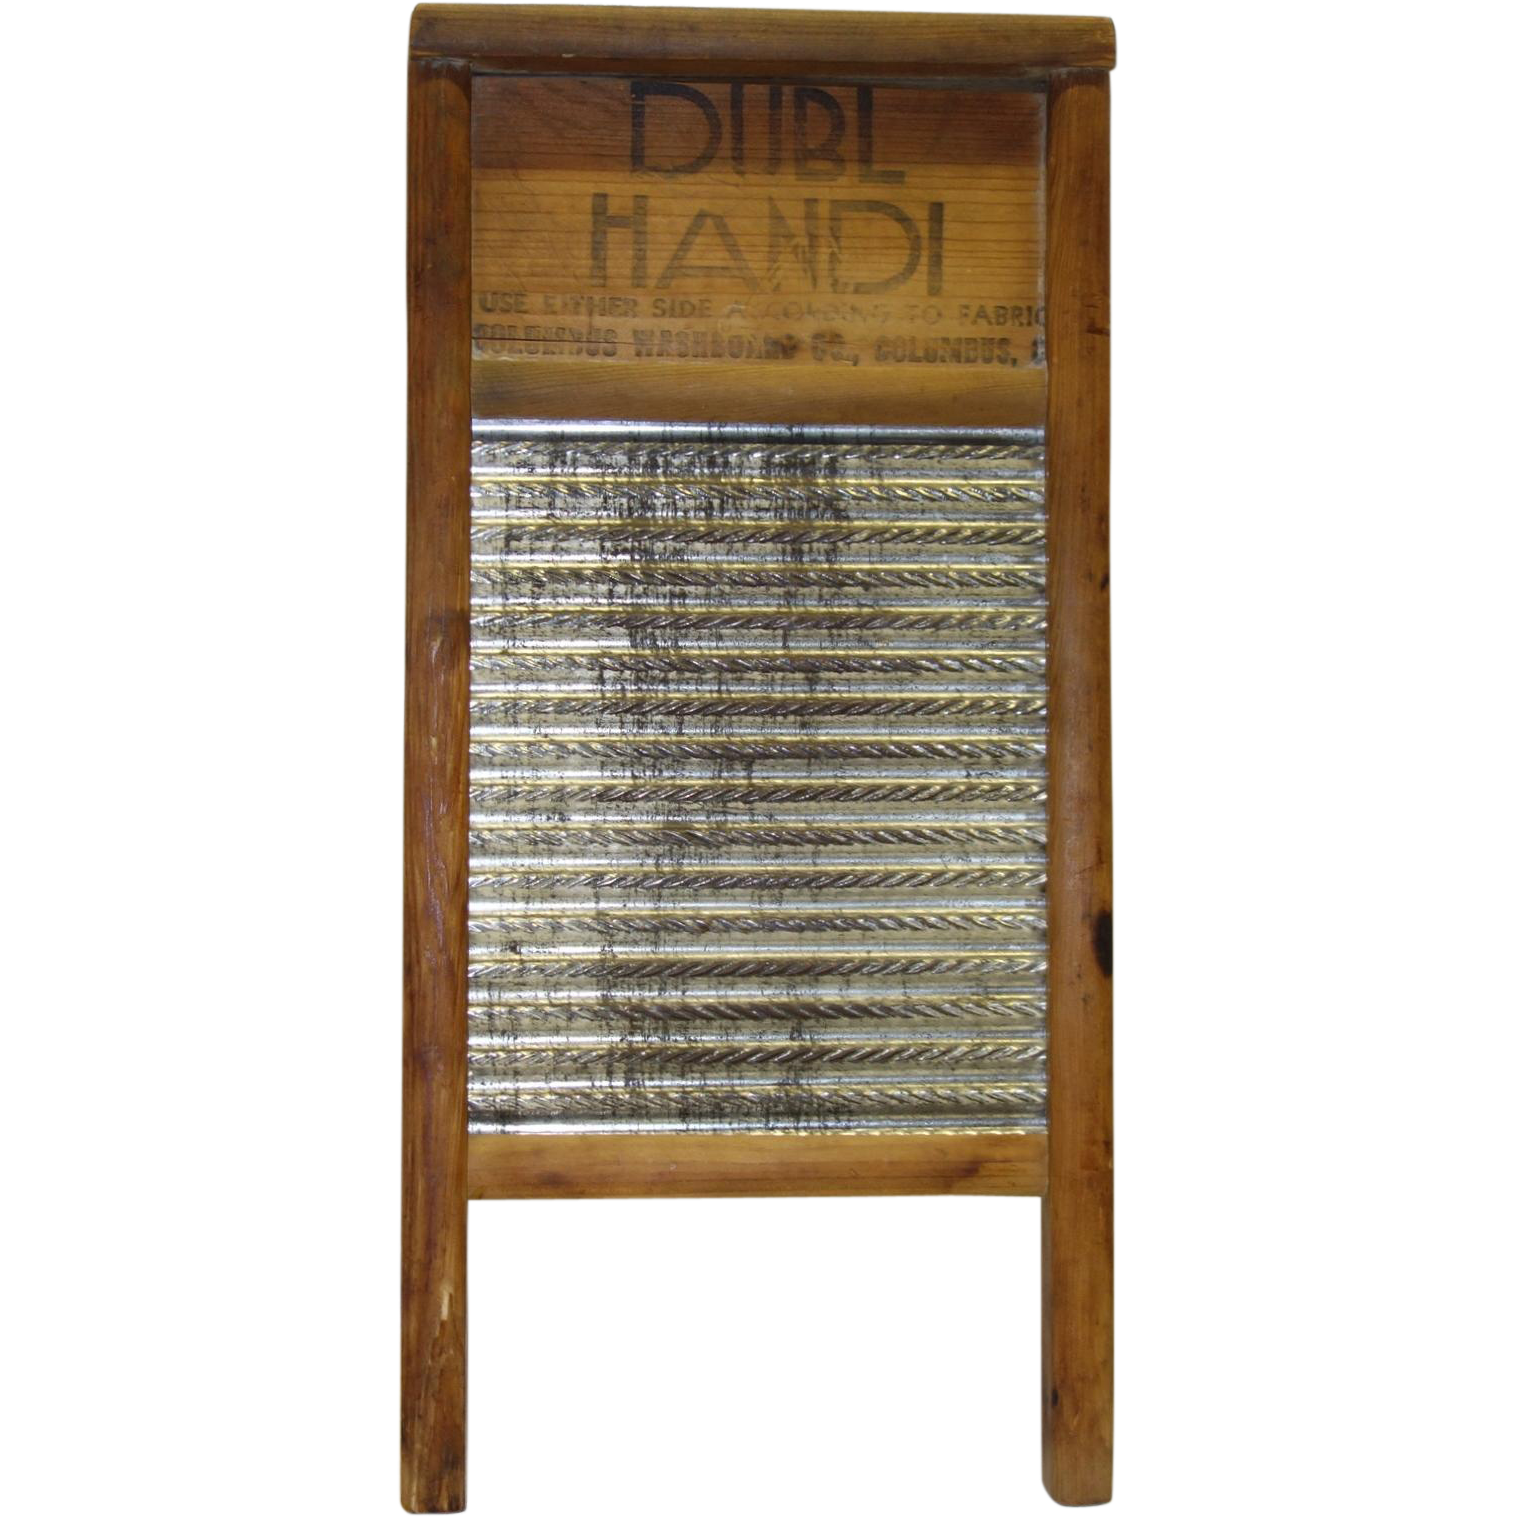 Vintage Dubl Handl Washboard By The Columbus Washboard Co Washboard Old Washboards Vintage